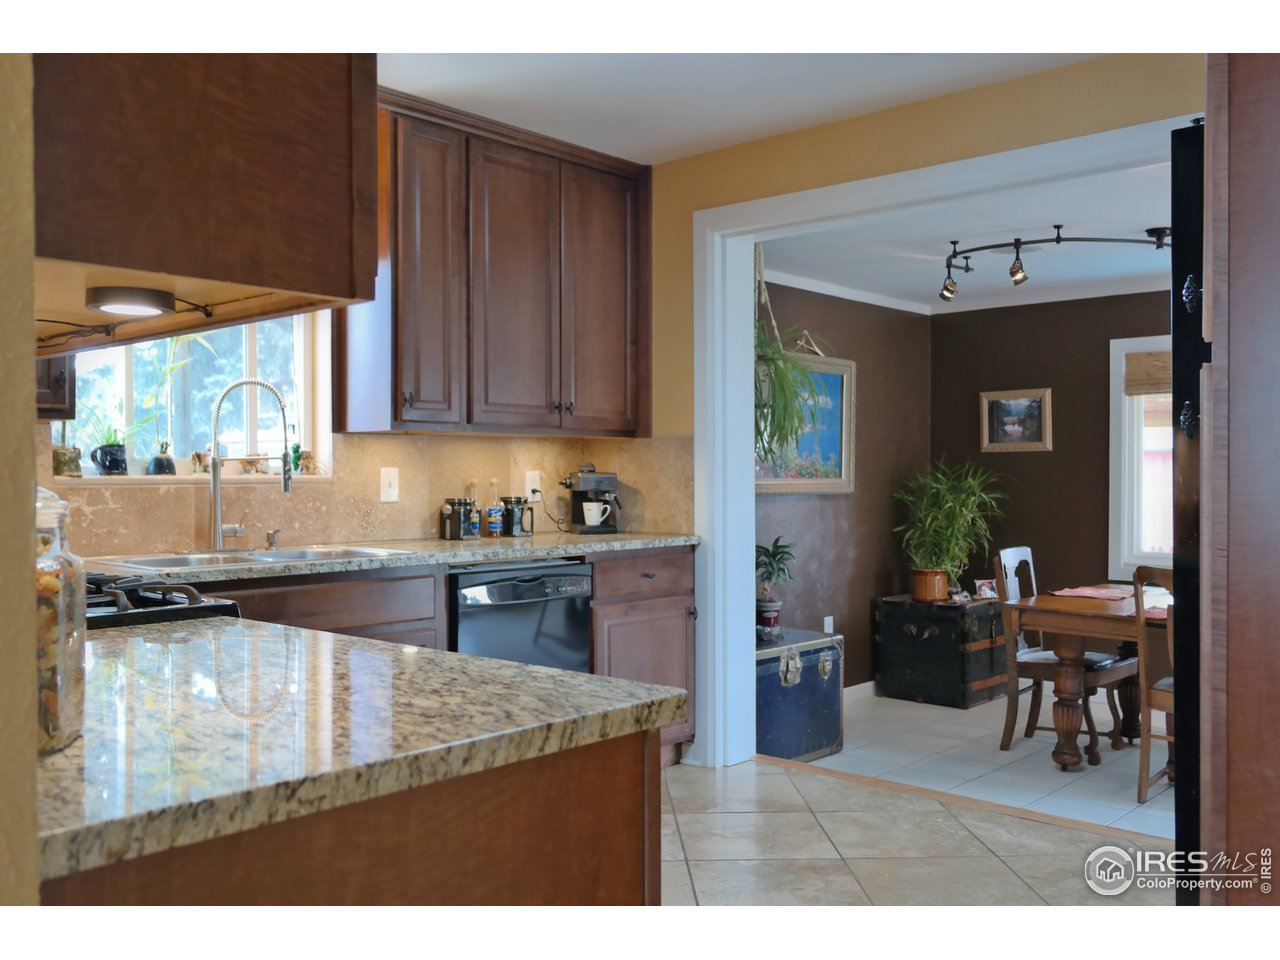 Perfectly Updated Kitchen w/Custom Finishes